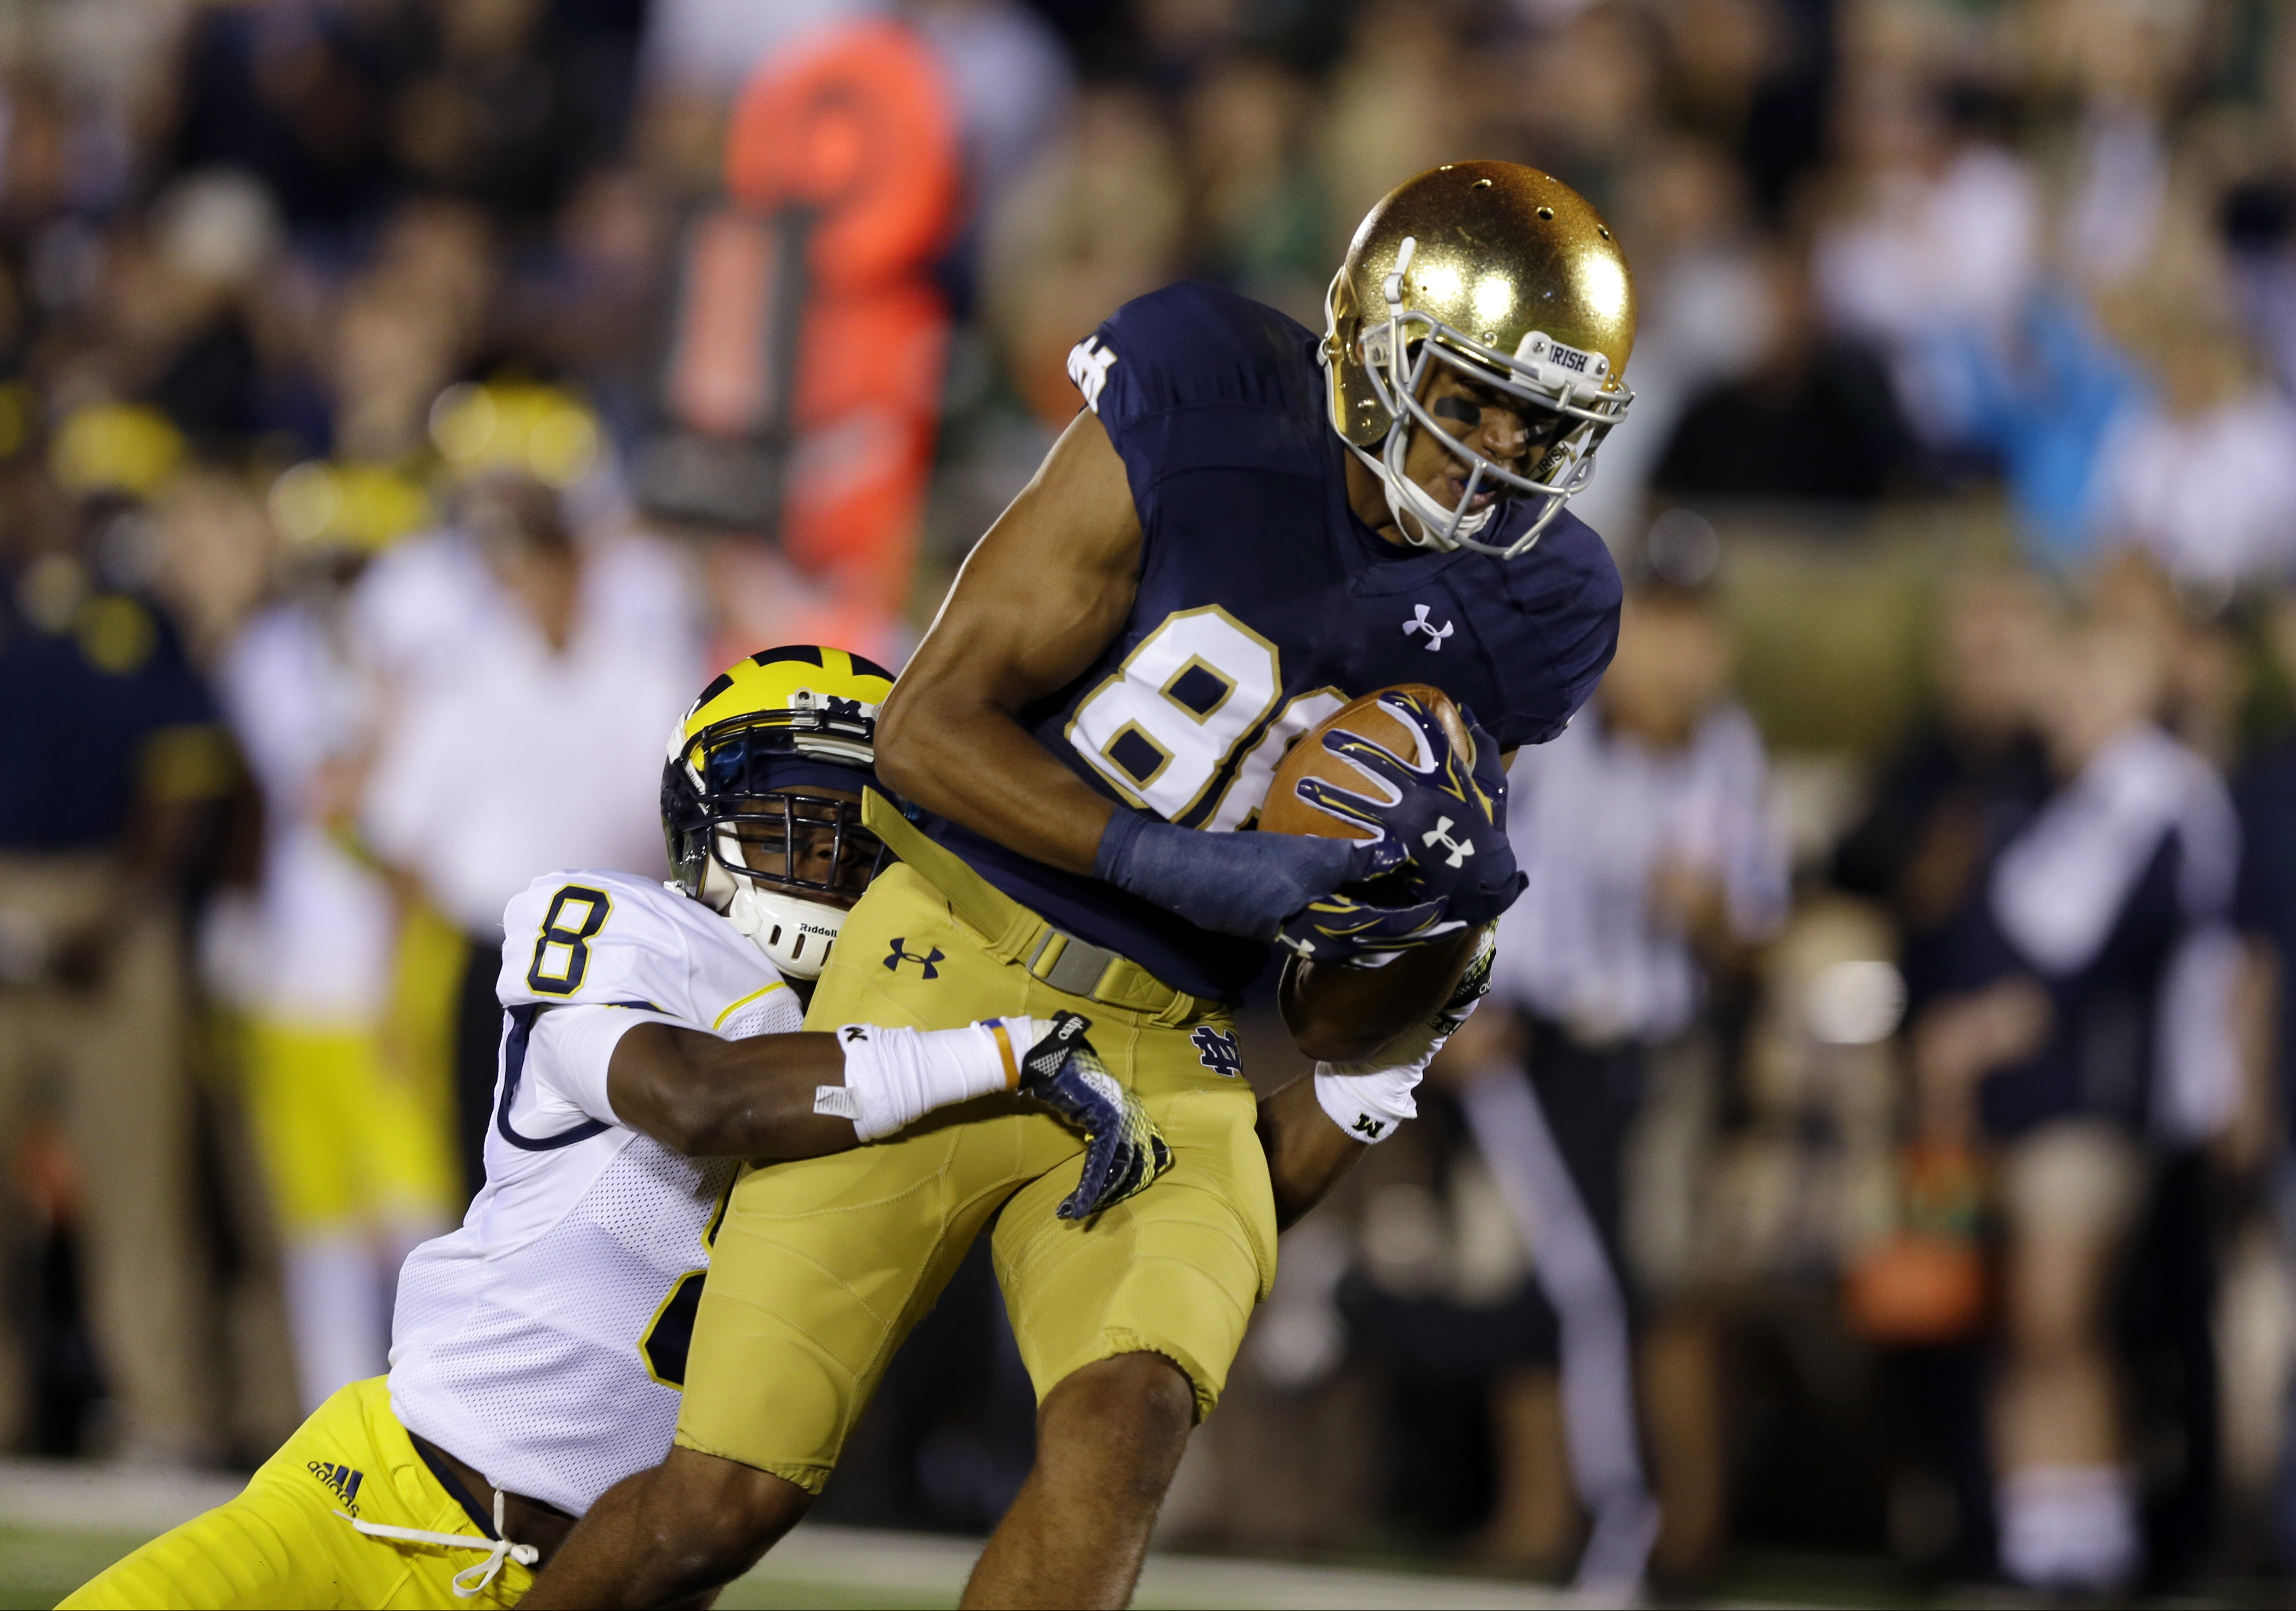 FILE - In this Sept. 6, 2014, file photo, Notre Dame wide receiver Corey Robinson, right, is tacked by Michigan defensive back Channing Stribling at the one-yard line during the first half of an NCAA college football game in South Bend, Ind. A person fami